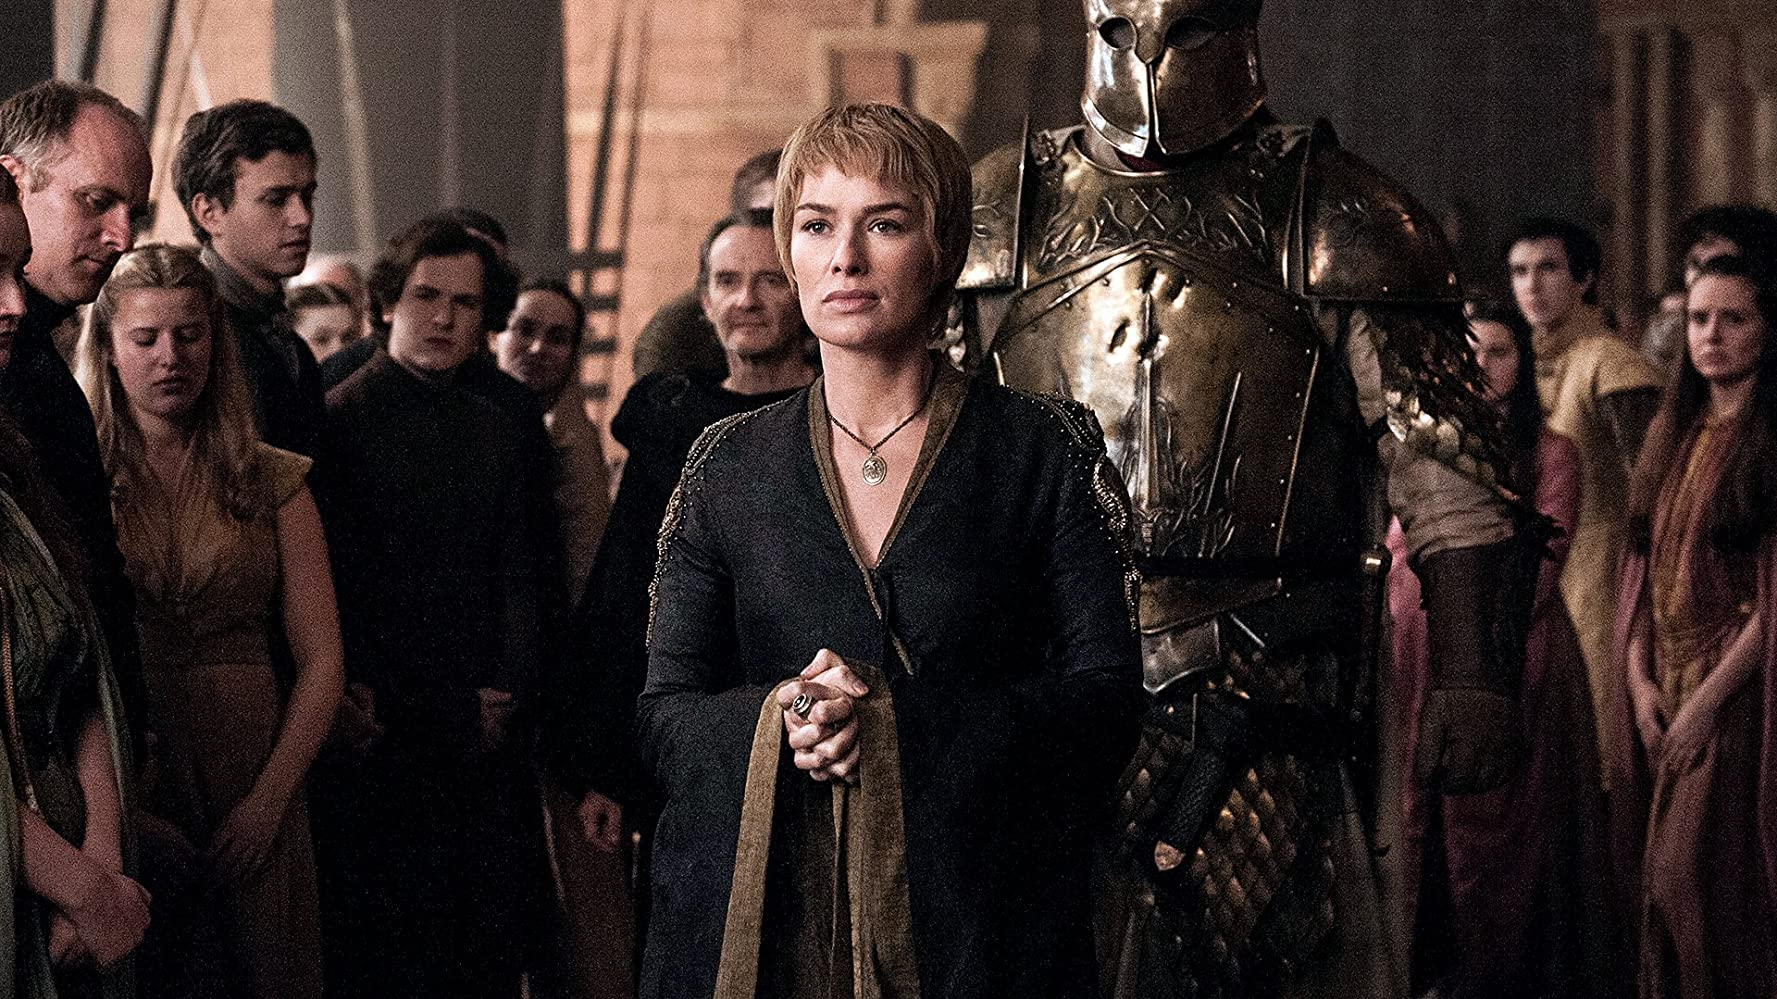 Lena Headey and Hafþór Júlíus Björnsson in Game of Thrones (2011)